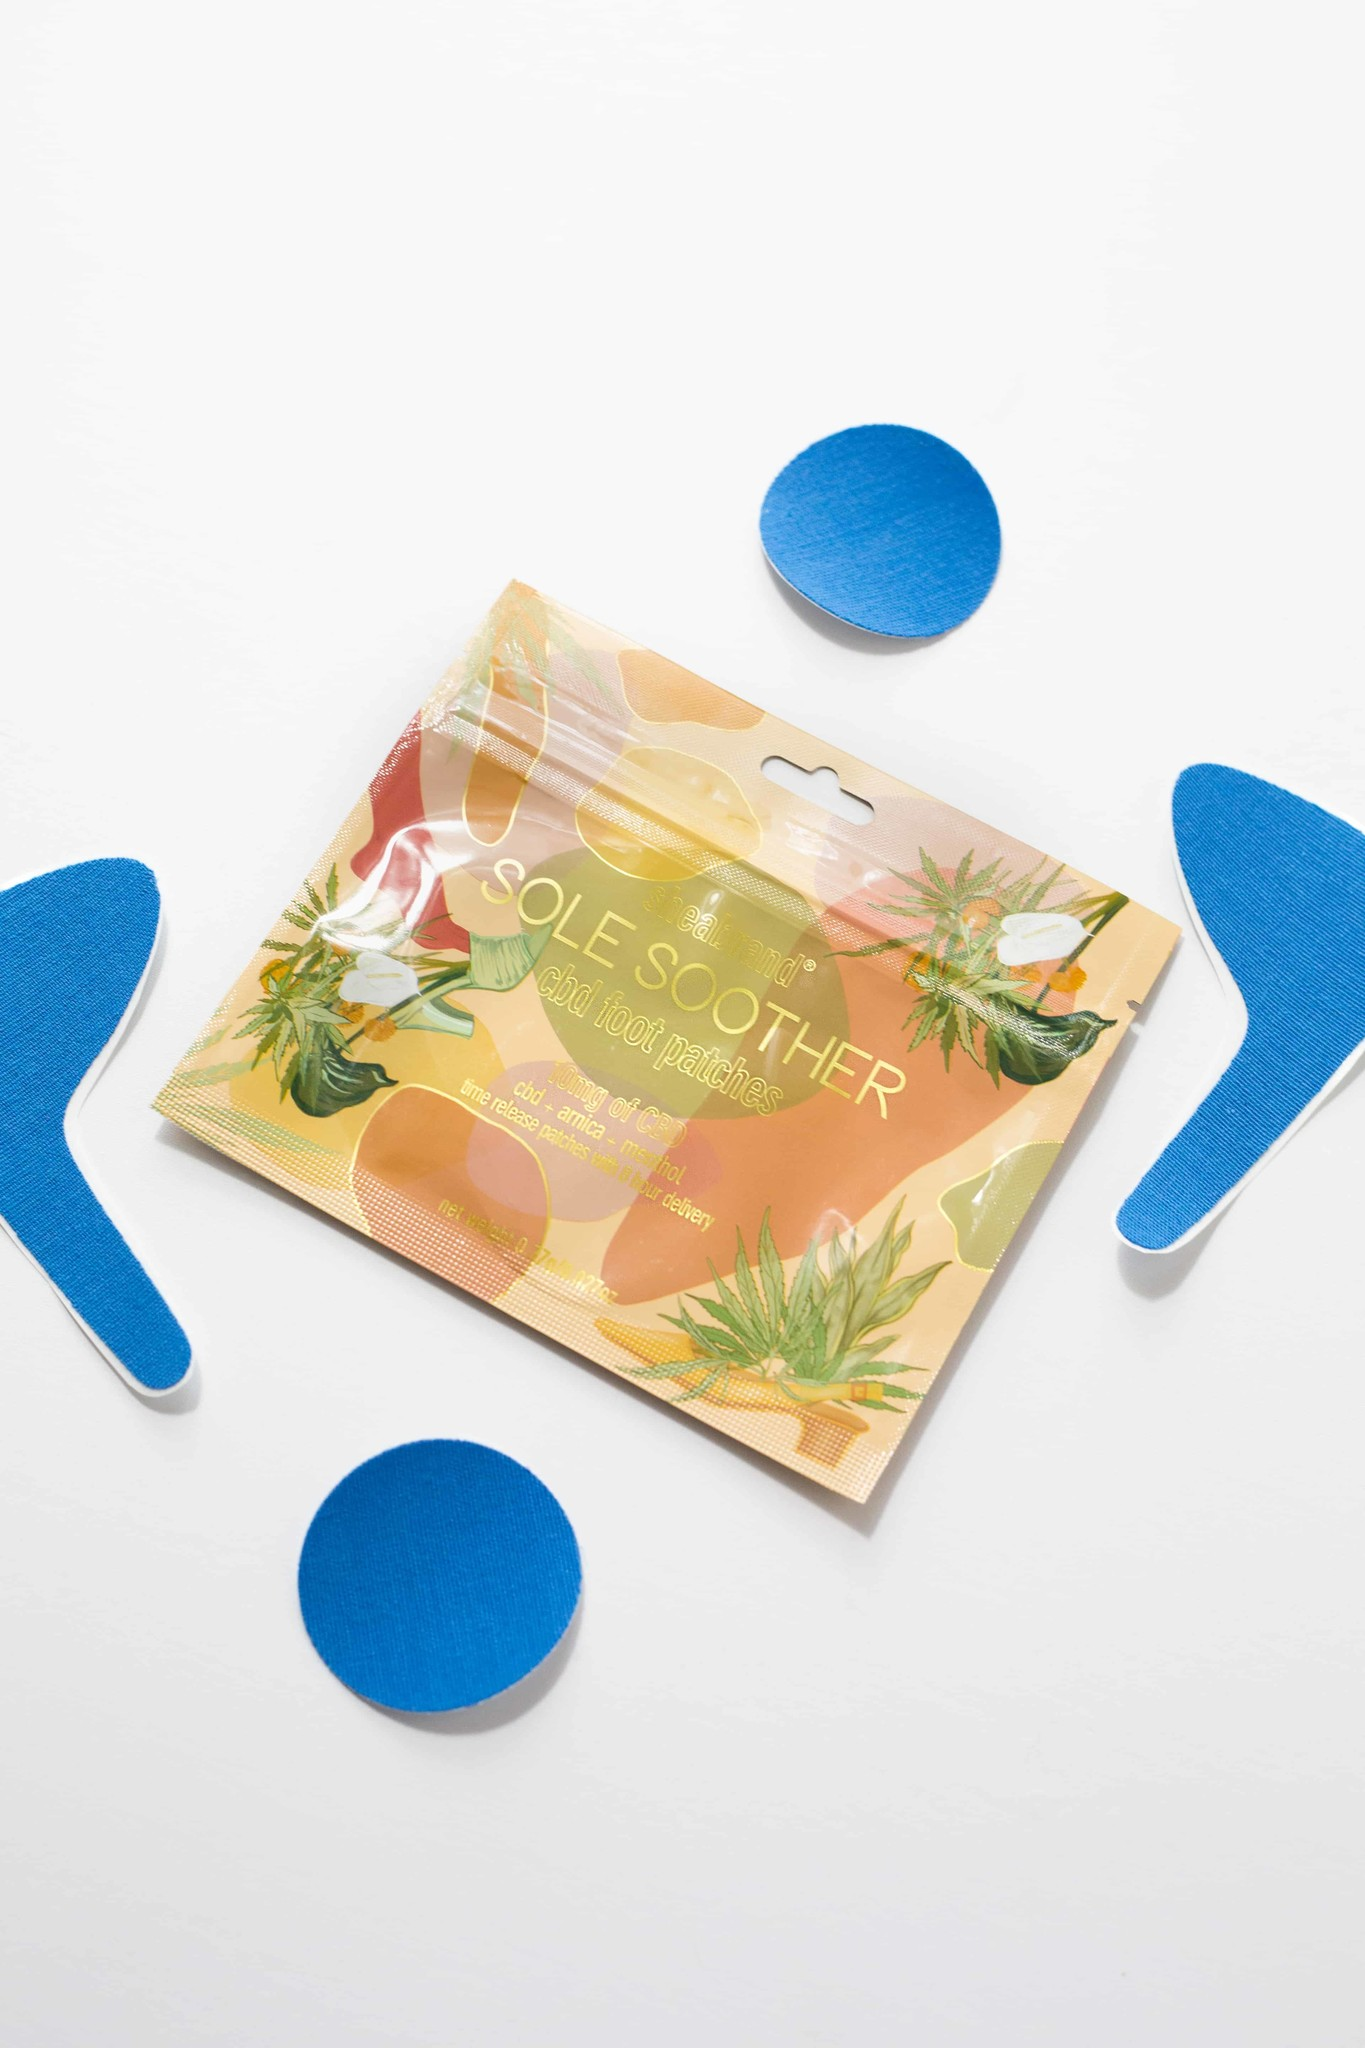 Shea Brand Sole Soother CBD Foot Patch